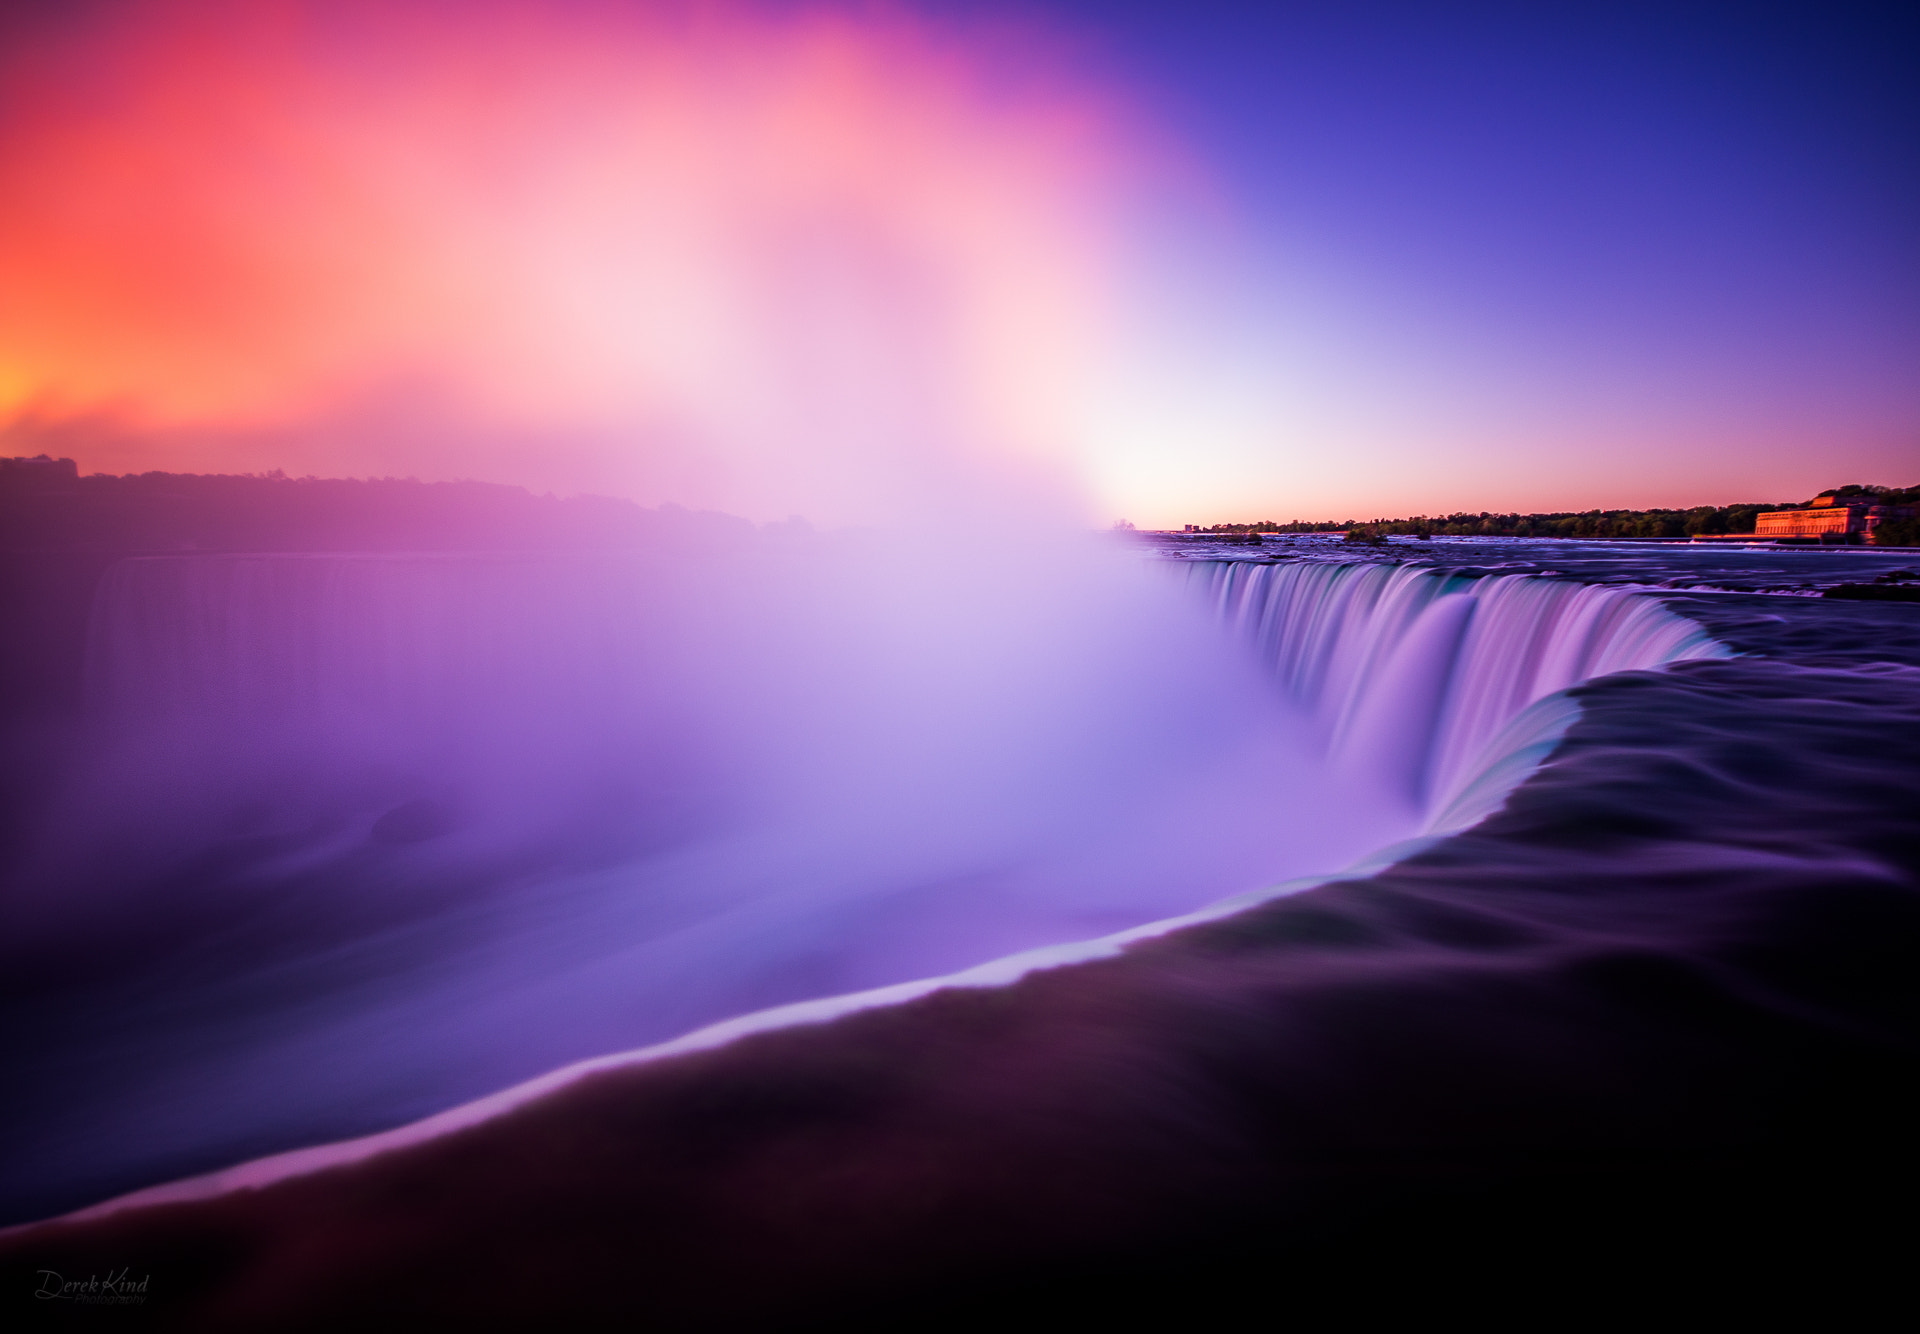 Photograph So I was at Niagara Falls, and then it dawned on me.... by Derek Kind on 500px